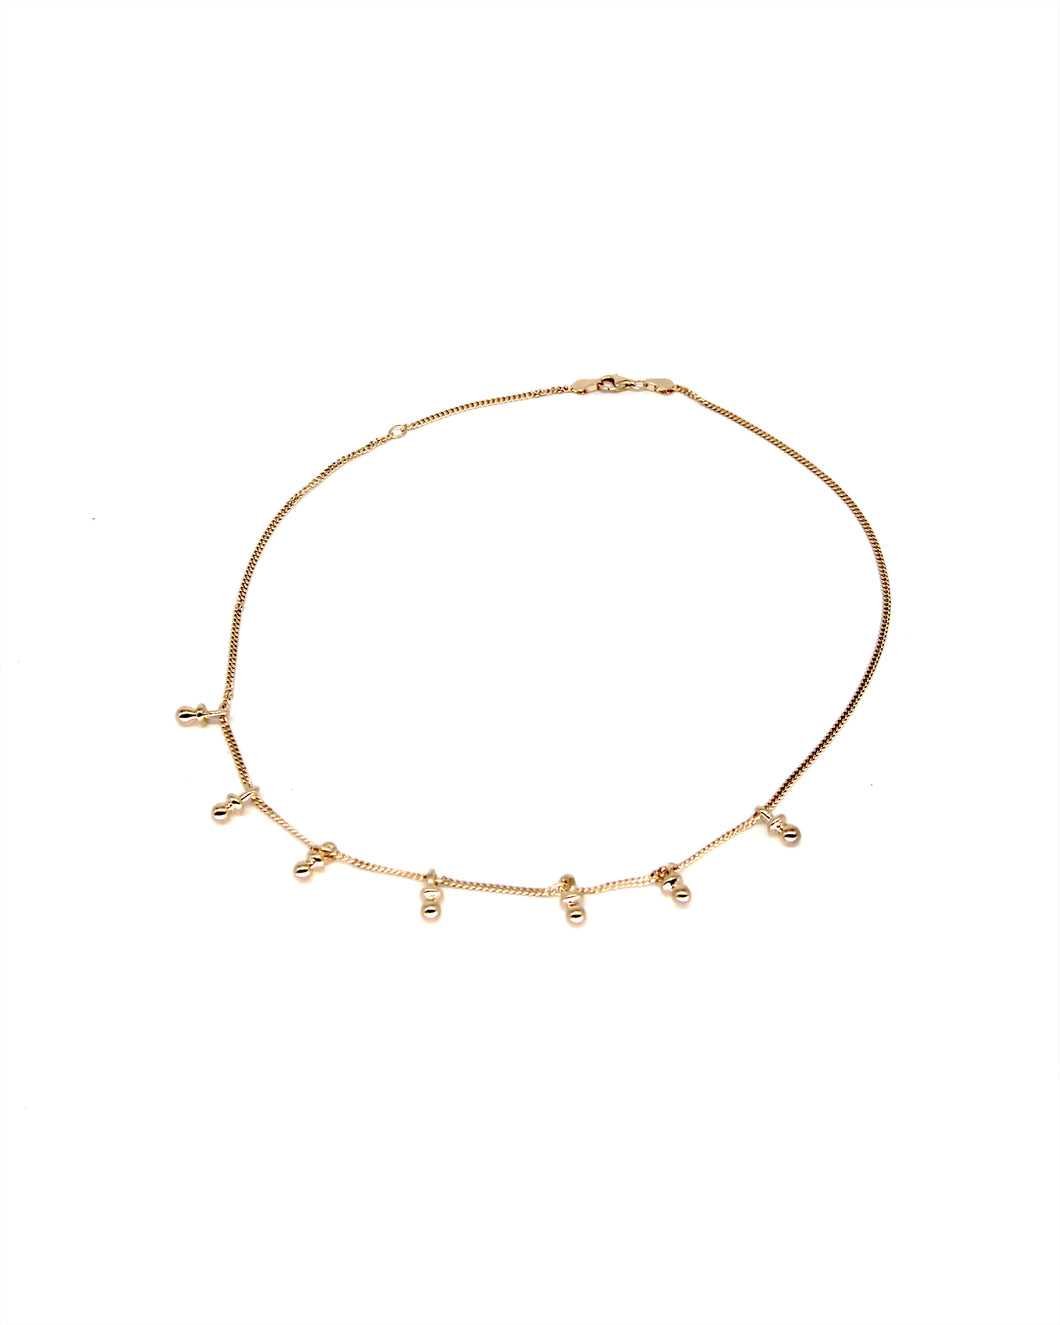 Be my Bebe Choker - Gold plated